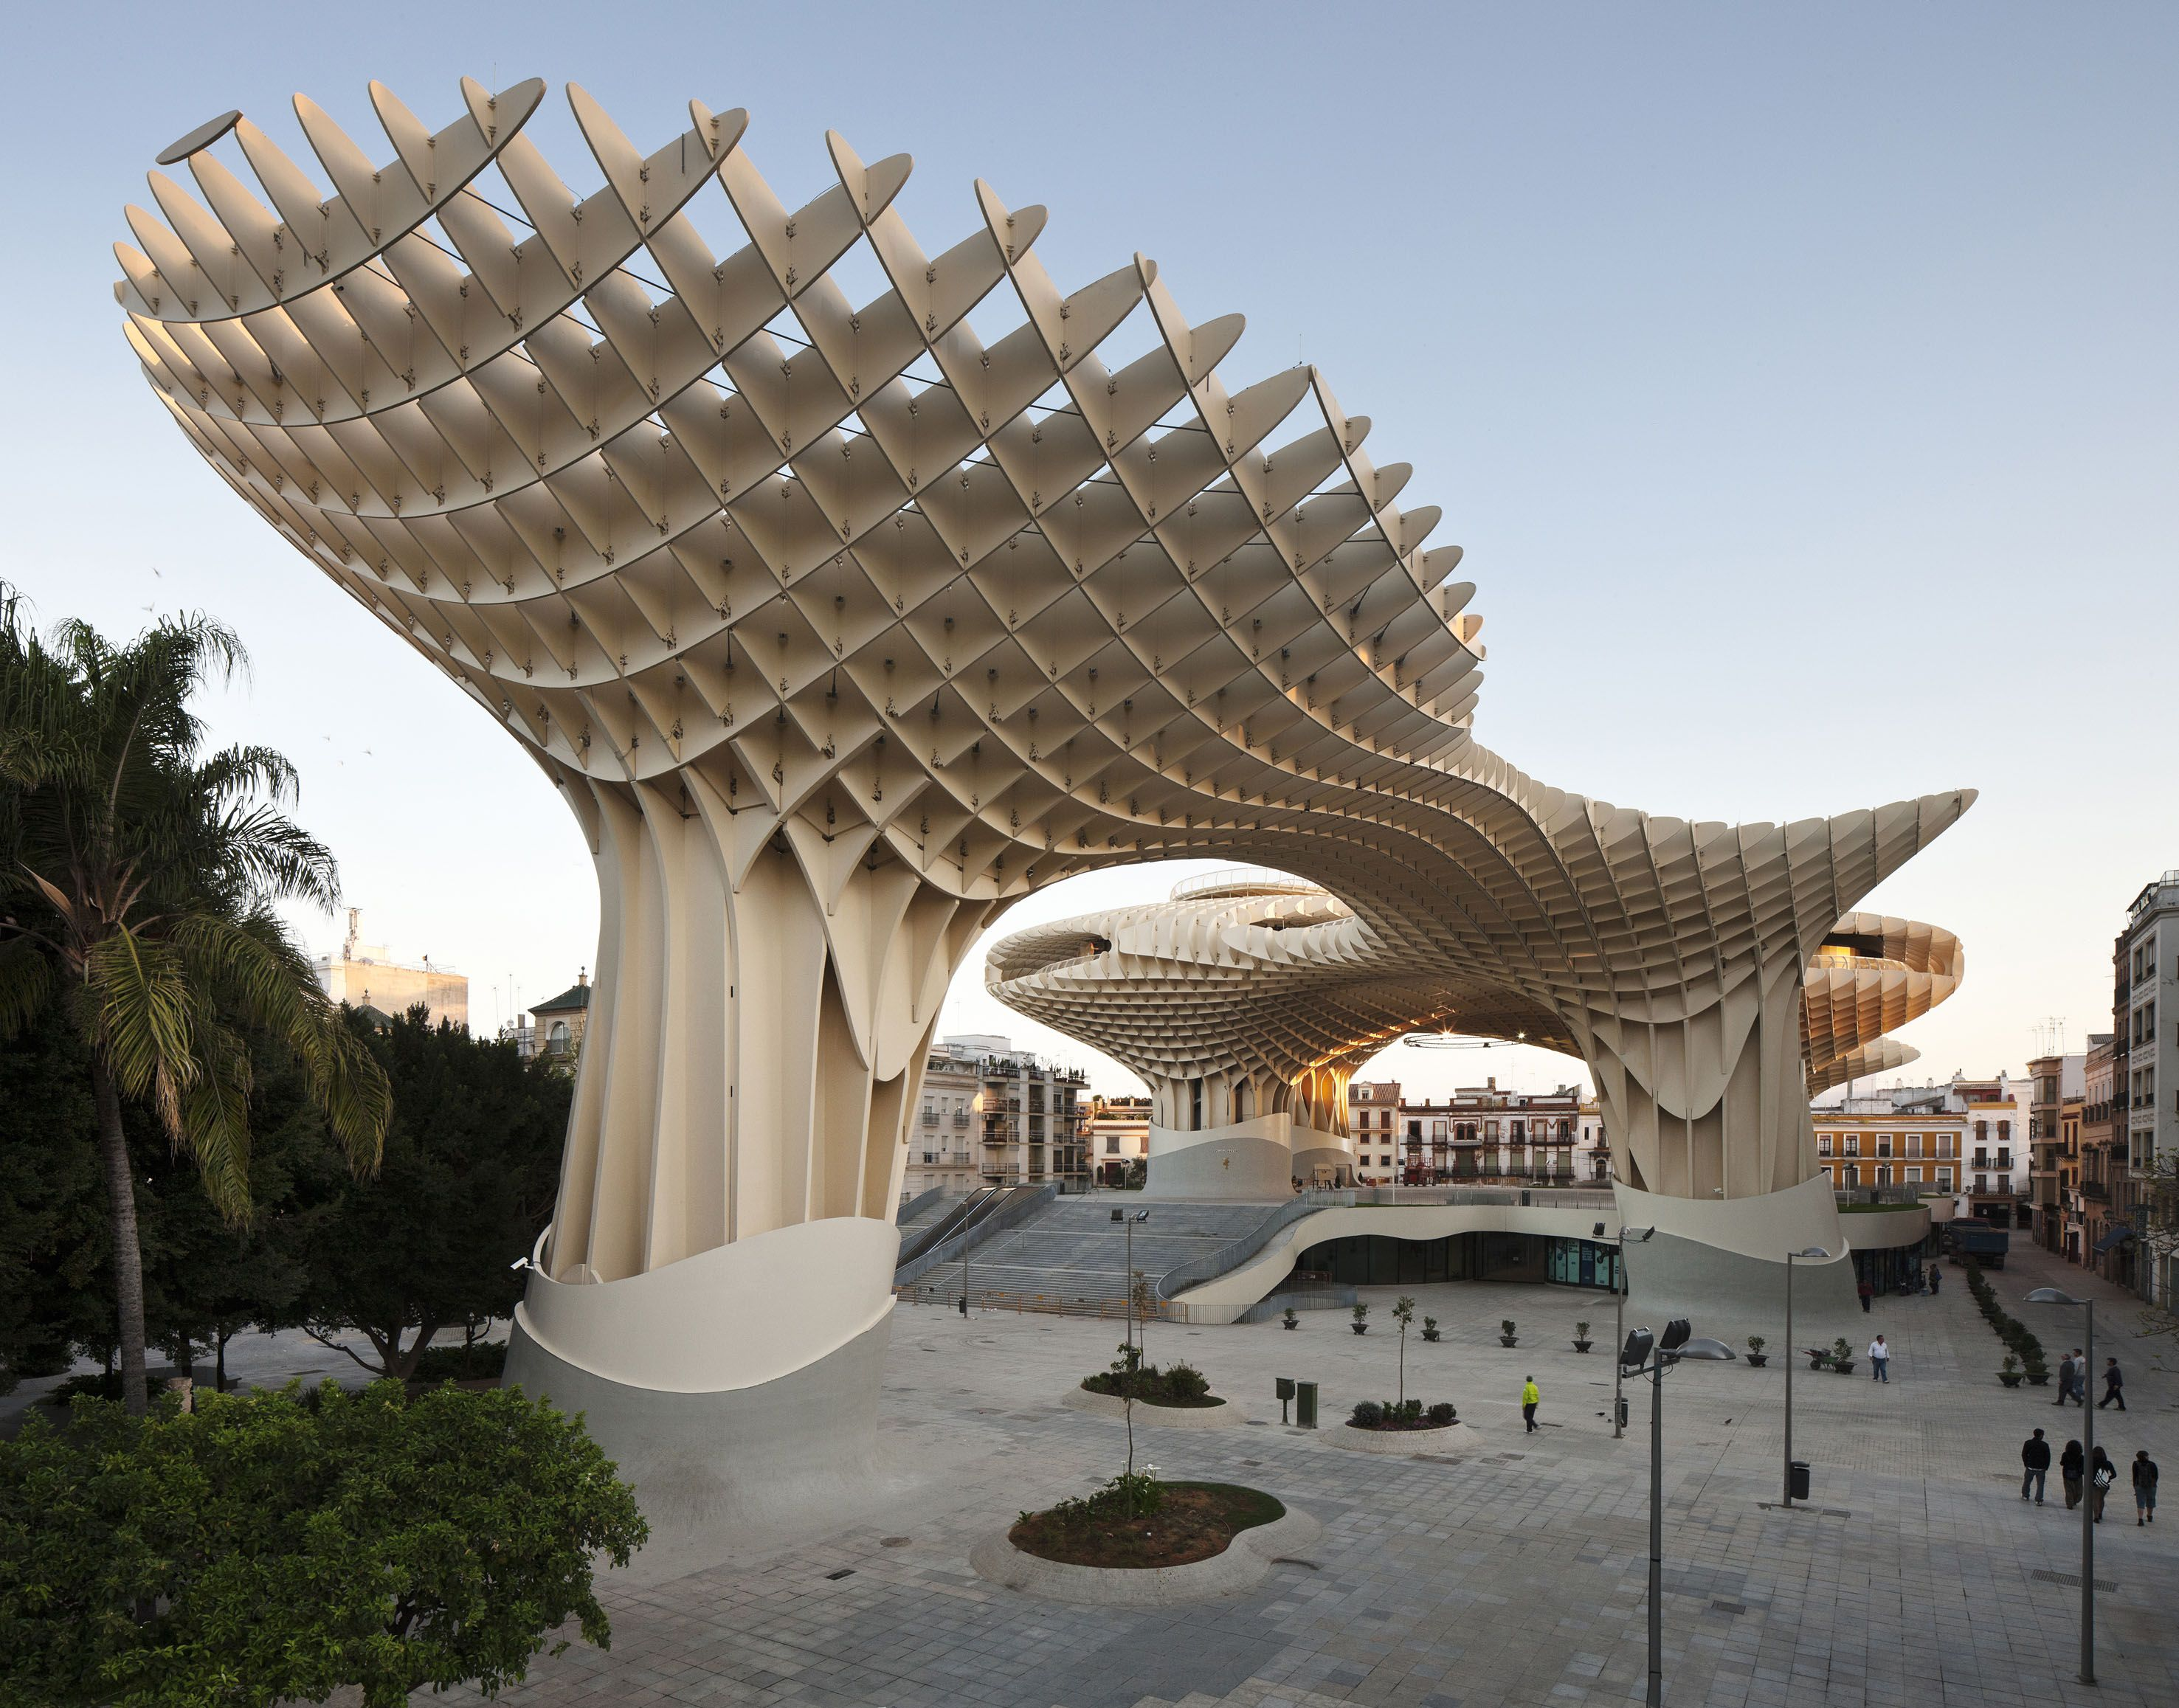 Metropol parasol the world s largest wooden structure -  Part Of The Redevelopment Project Of The Plaza De La Encarnac On Designed By J Mayer H Architects It Is Now The World S Largest Wooden Structure